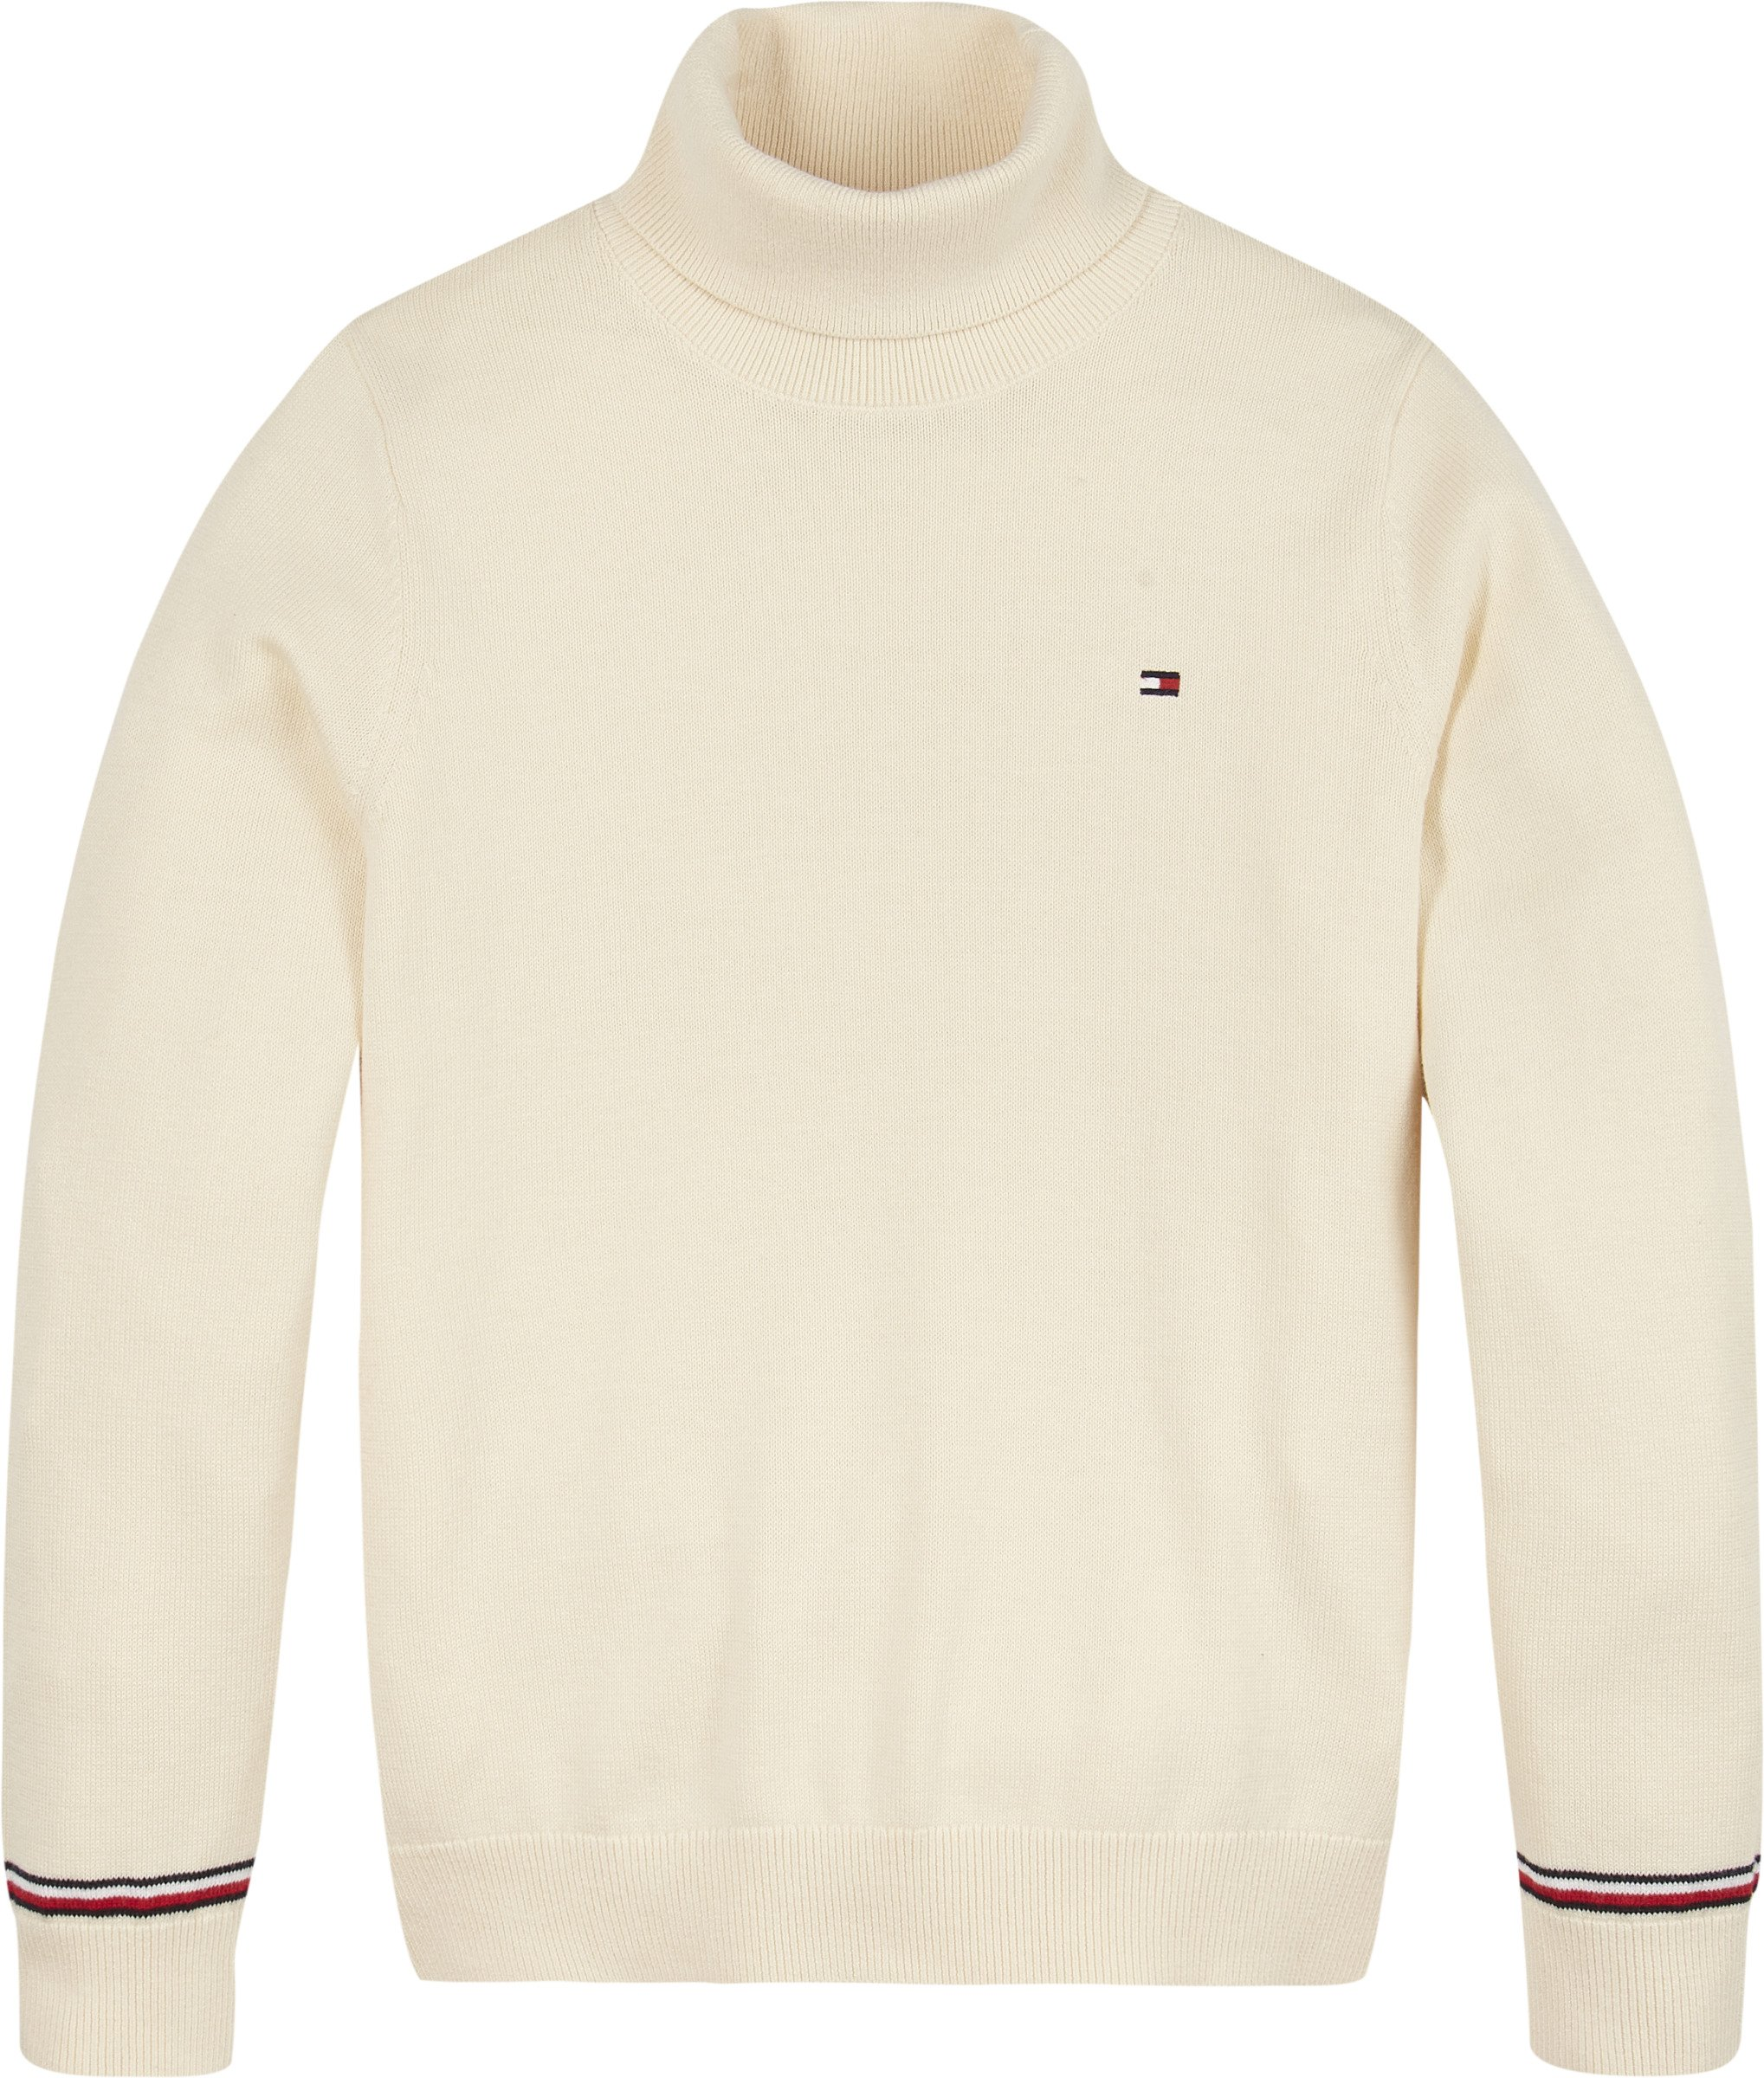 Tommy Hilfiger, essential turtle neck sweater